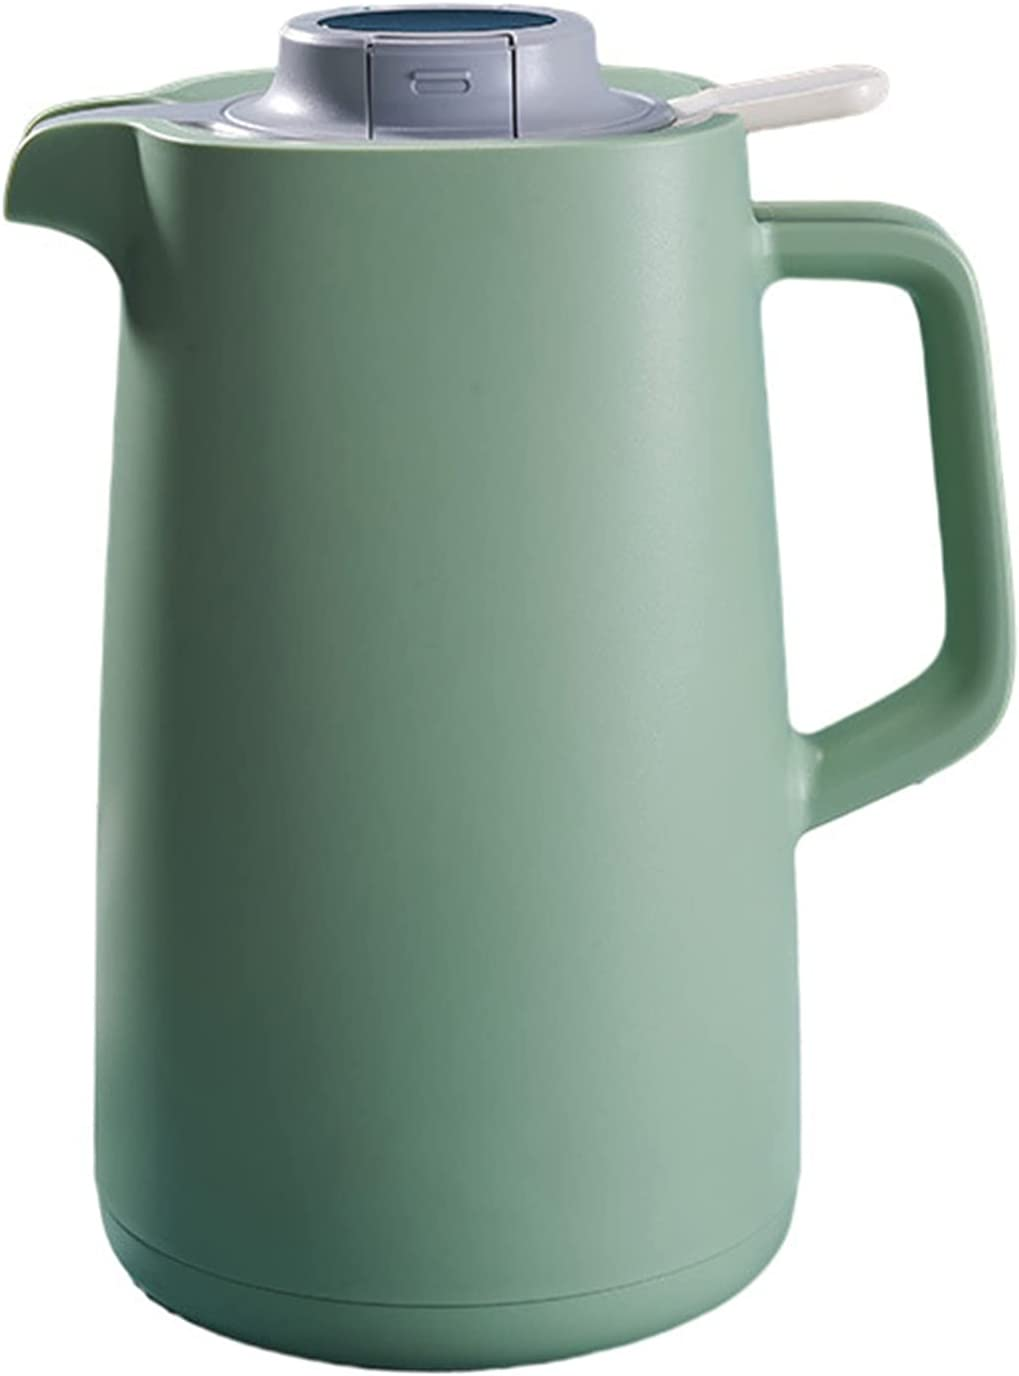 FDQNDXF 51 oz Department store Coffee Carafe Vacuu latest Stainless Double Walled Steel